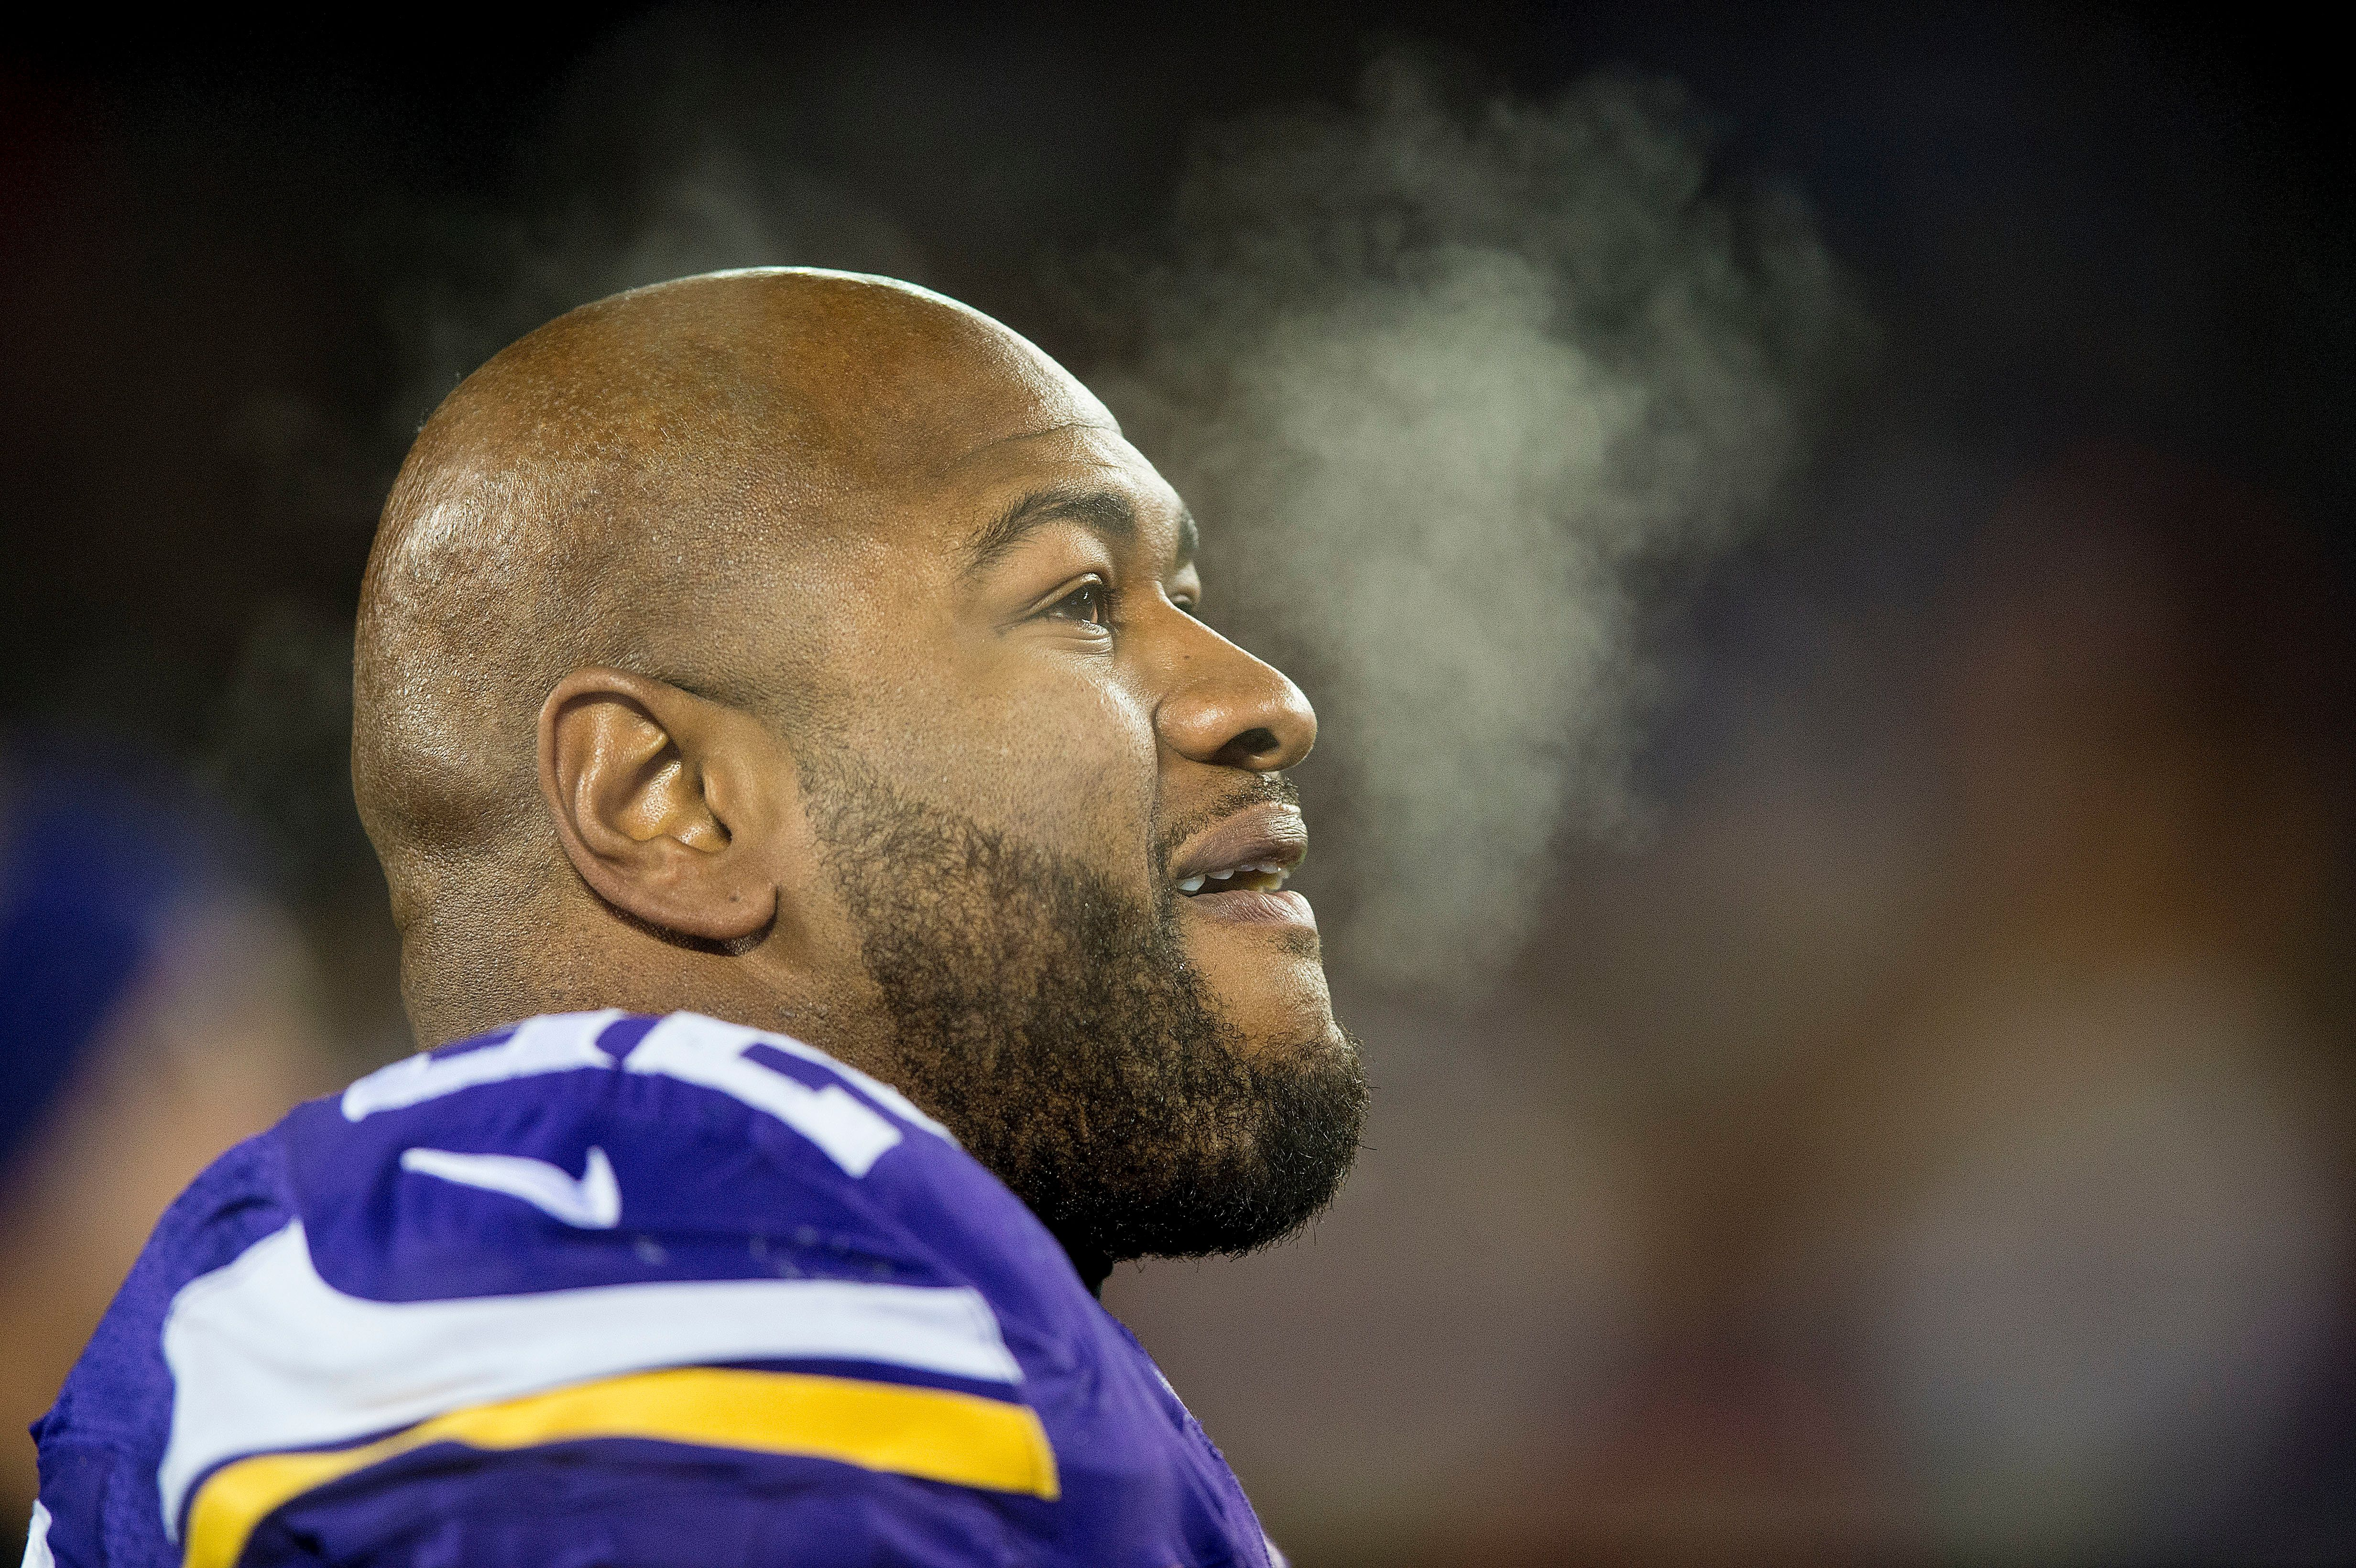 MINNEAPOLIS, MN - DECEMBER 27: Tom Johnson #92 of the Minnesota Vikings cools off during an NFL game against the New York Giants at TCF Bank Stadium December 27, 2015 in Minneapolis, Minnesota.  (Photo by Tom Dahlin/Getty Images)